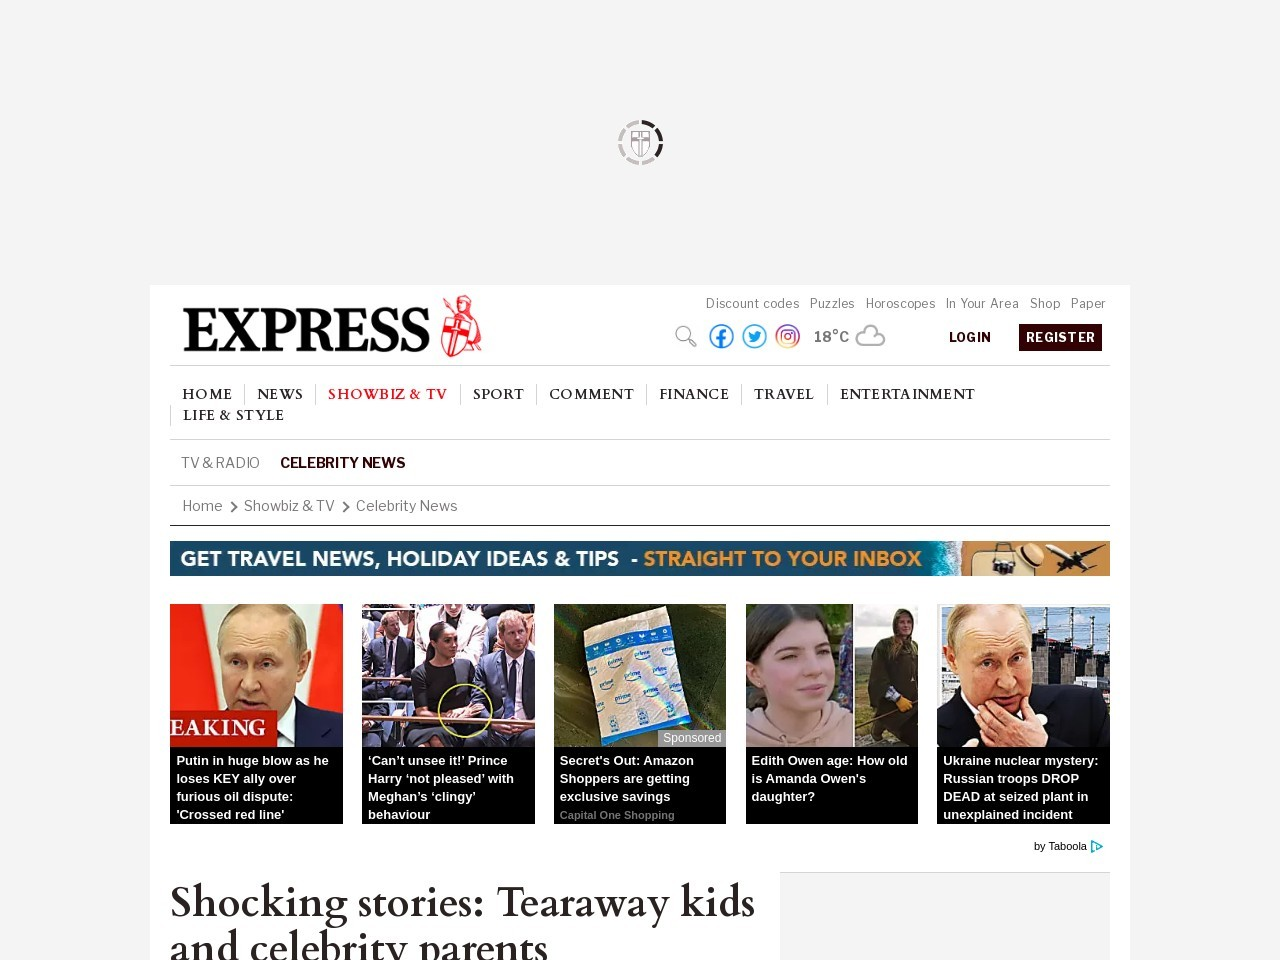 Shocking stories: Tearaway kids and celebrity parents